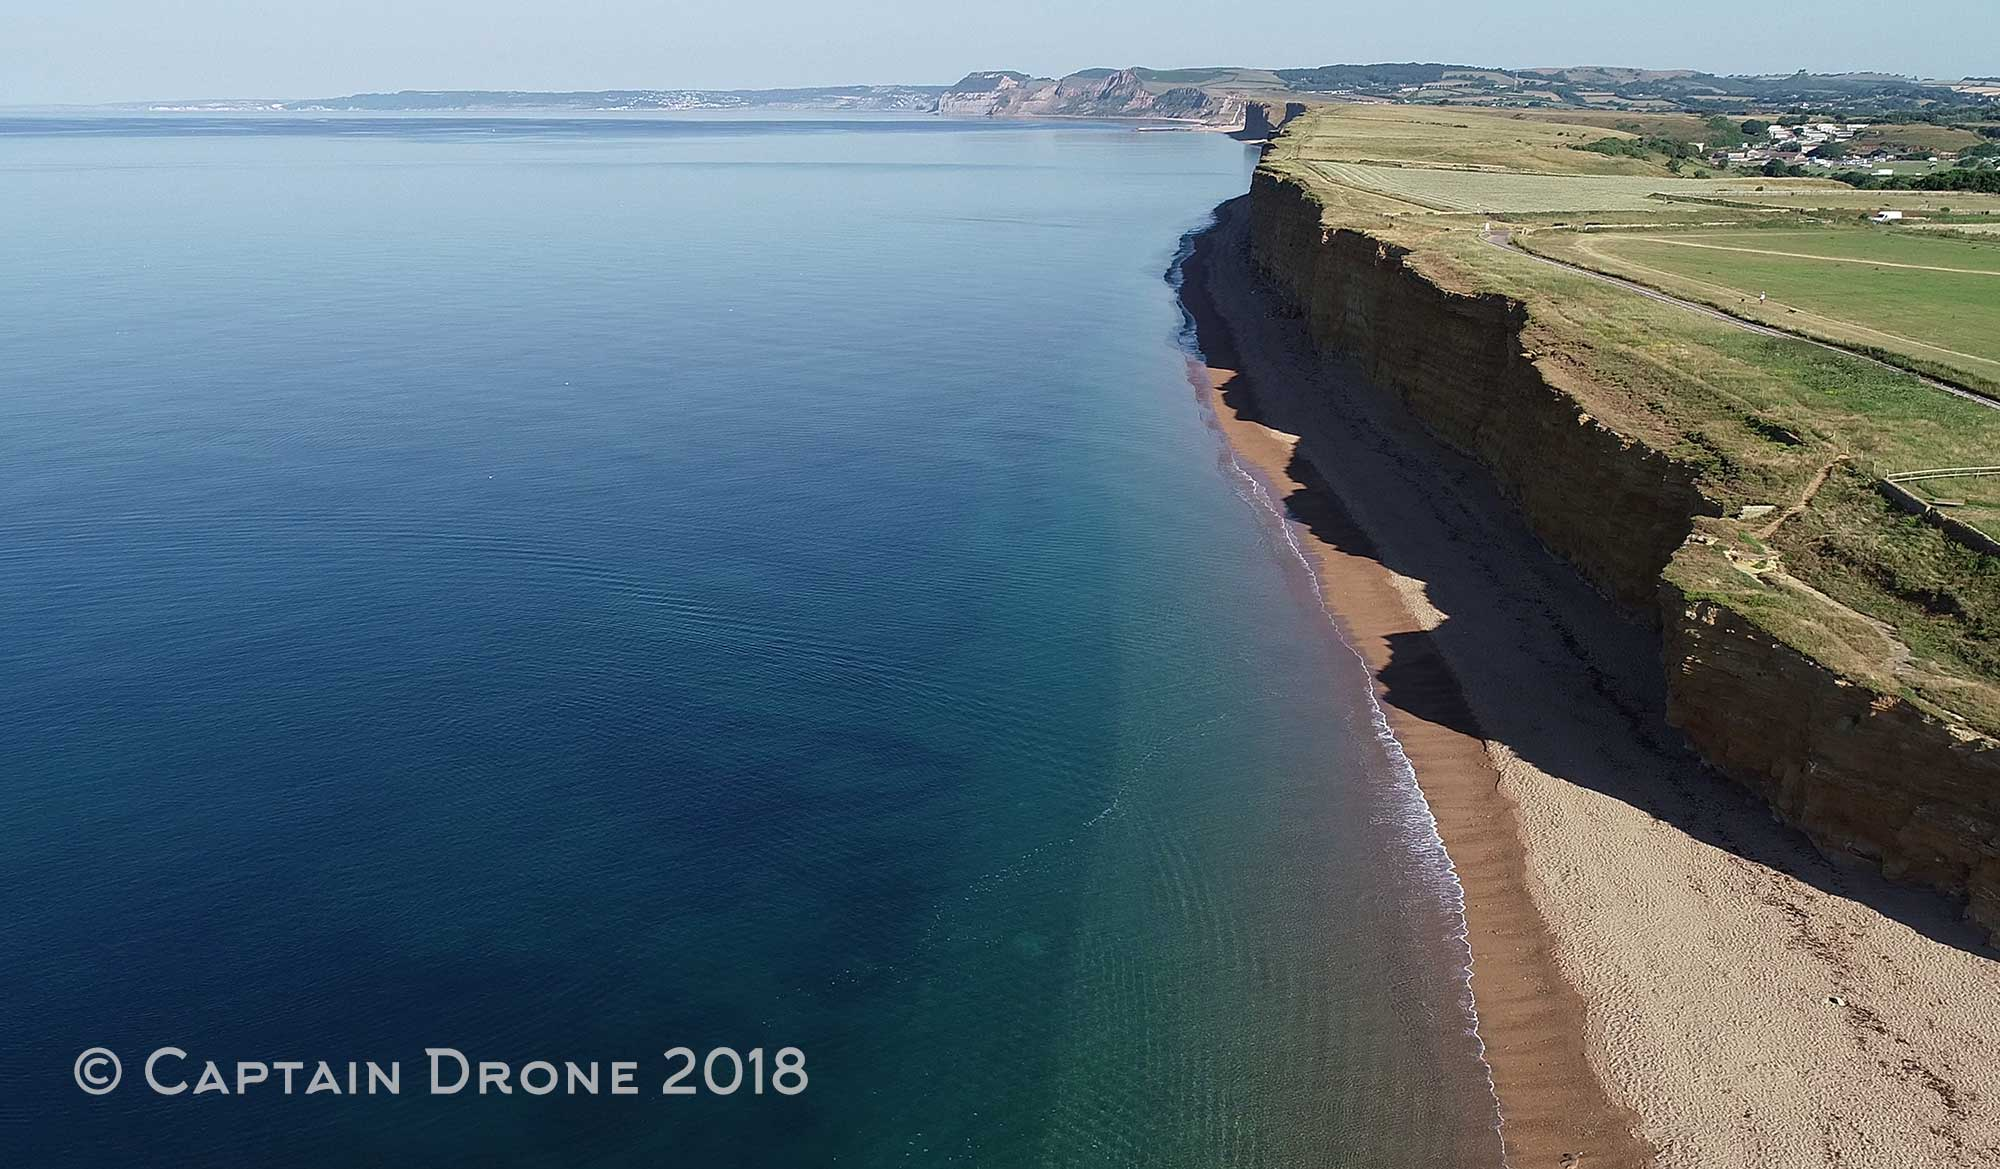 Hive Beach aerial photography by Captain Drone